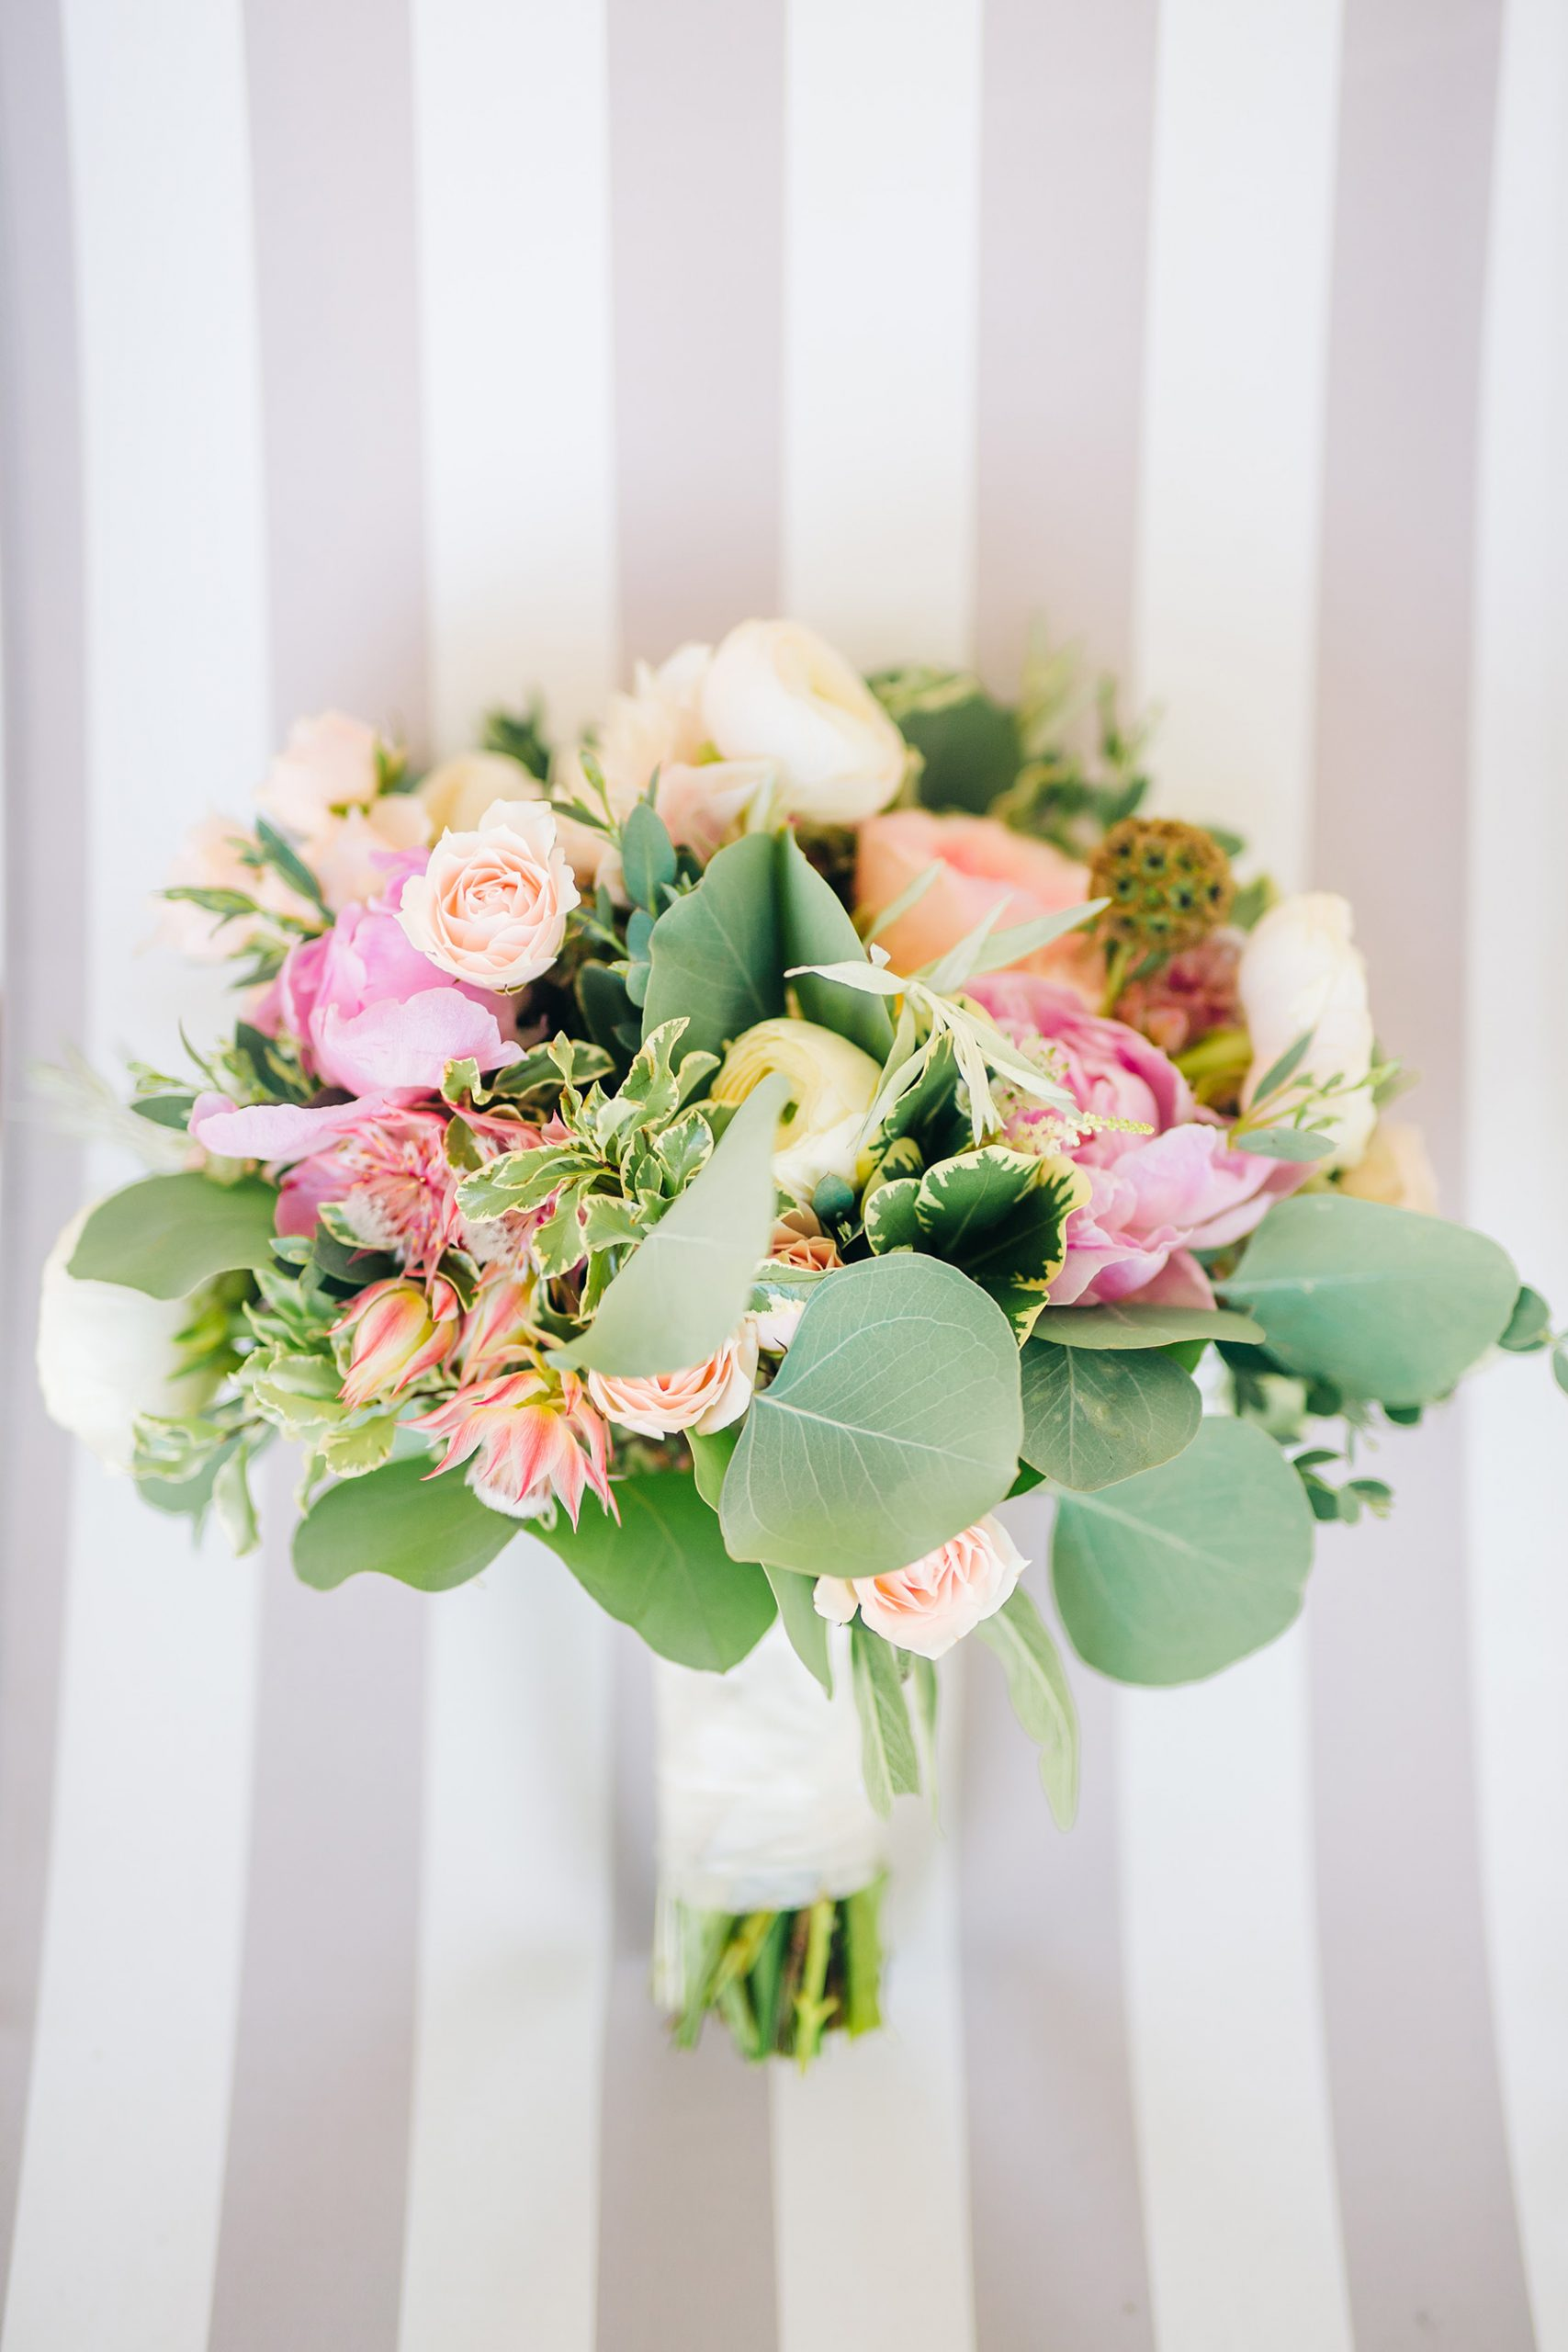 Sherwood Florist | Wedding Florist serving Maryland's Eastern Shore